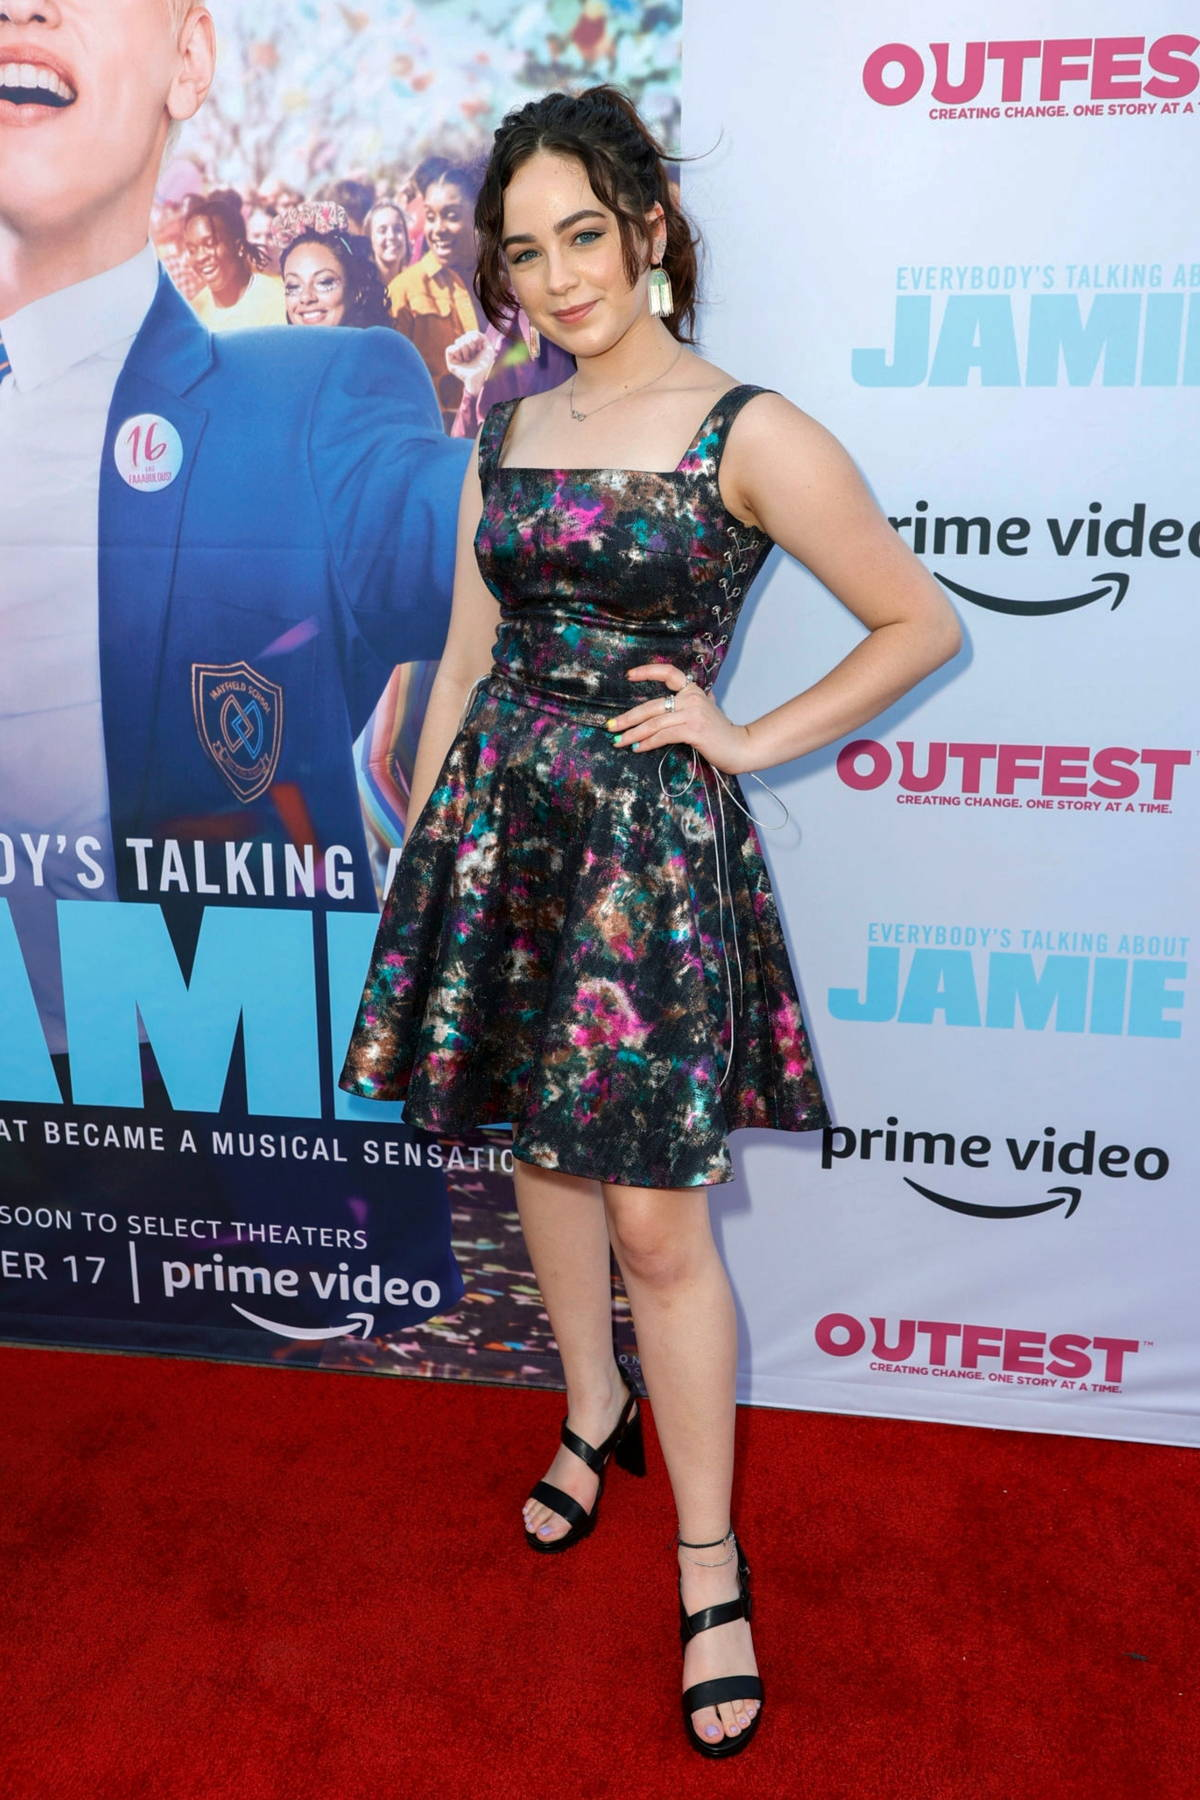 Mary Mouser attends the Premiere of 'Everybody's Talking About Jamie' in Los Angeles